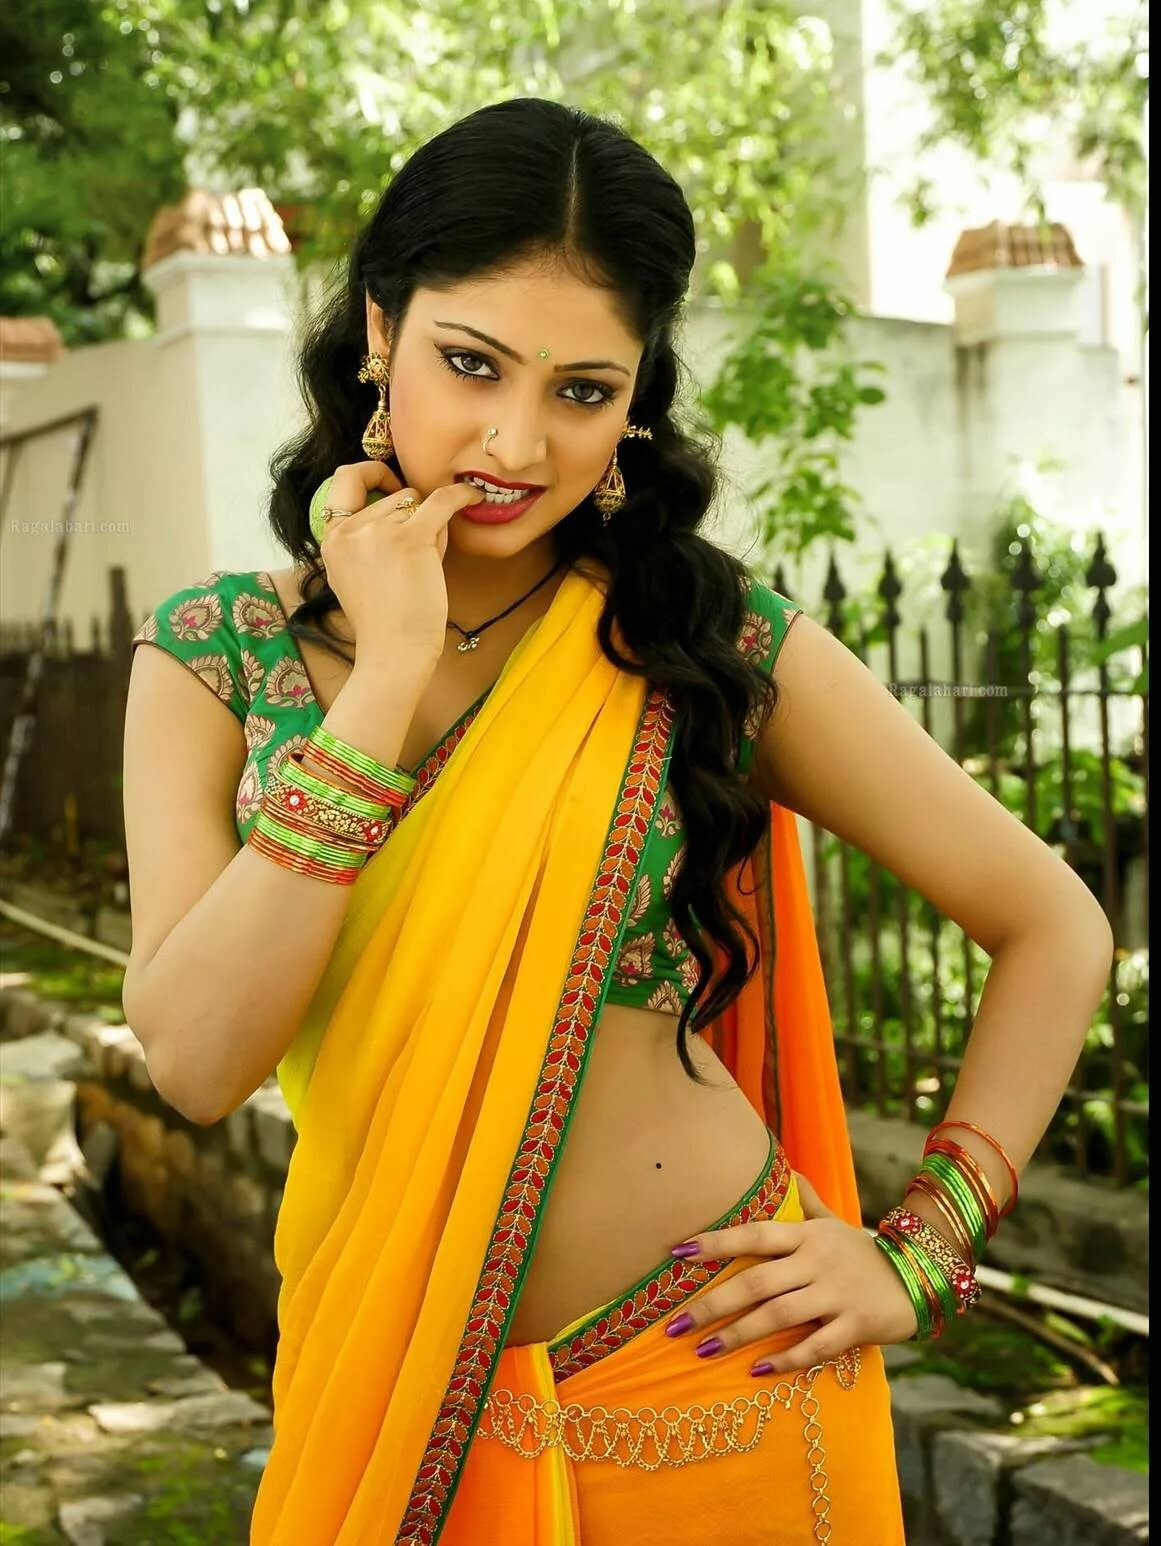 Why are tamilian girls so beautiful